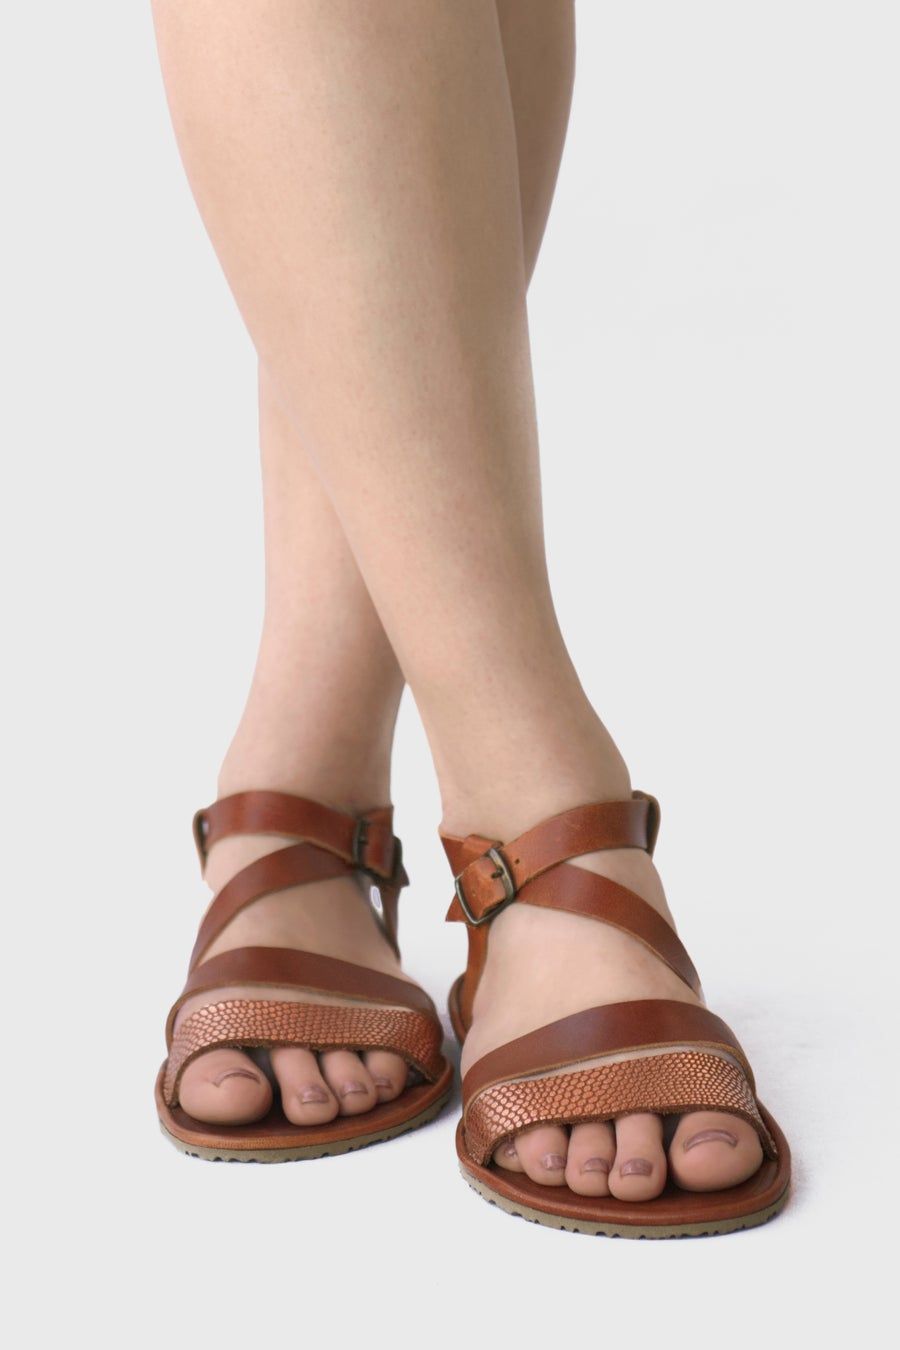 Image of Safita -  Sandals in Tobacco brown/bronze Metallic